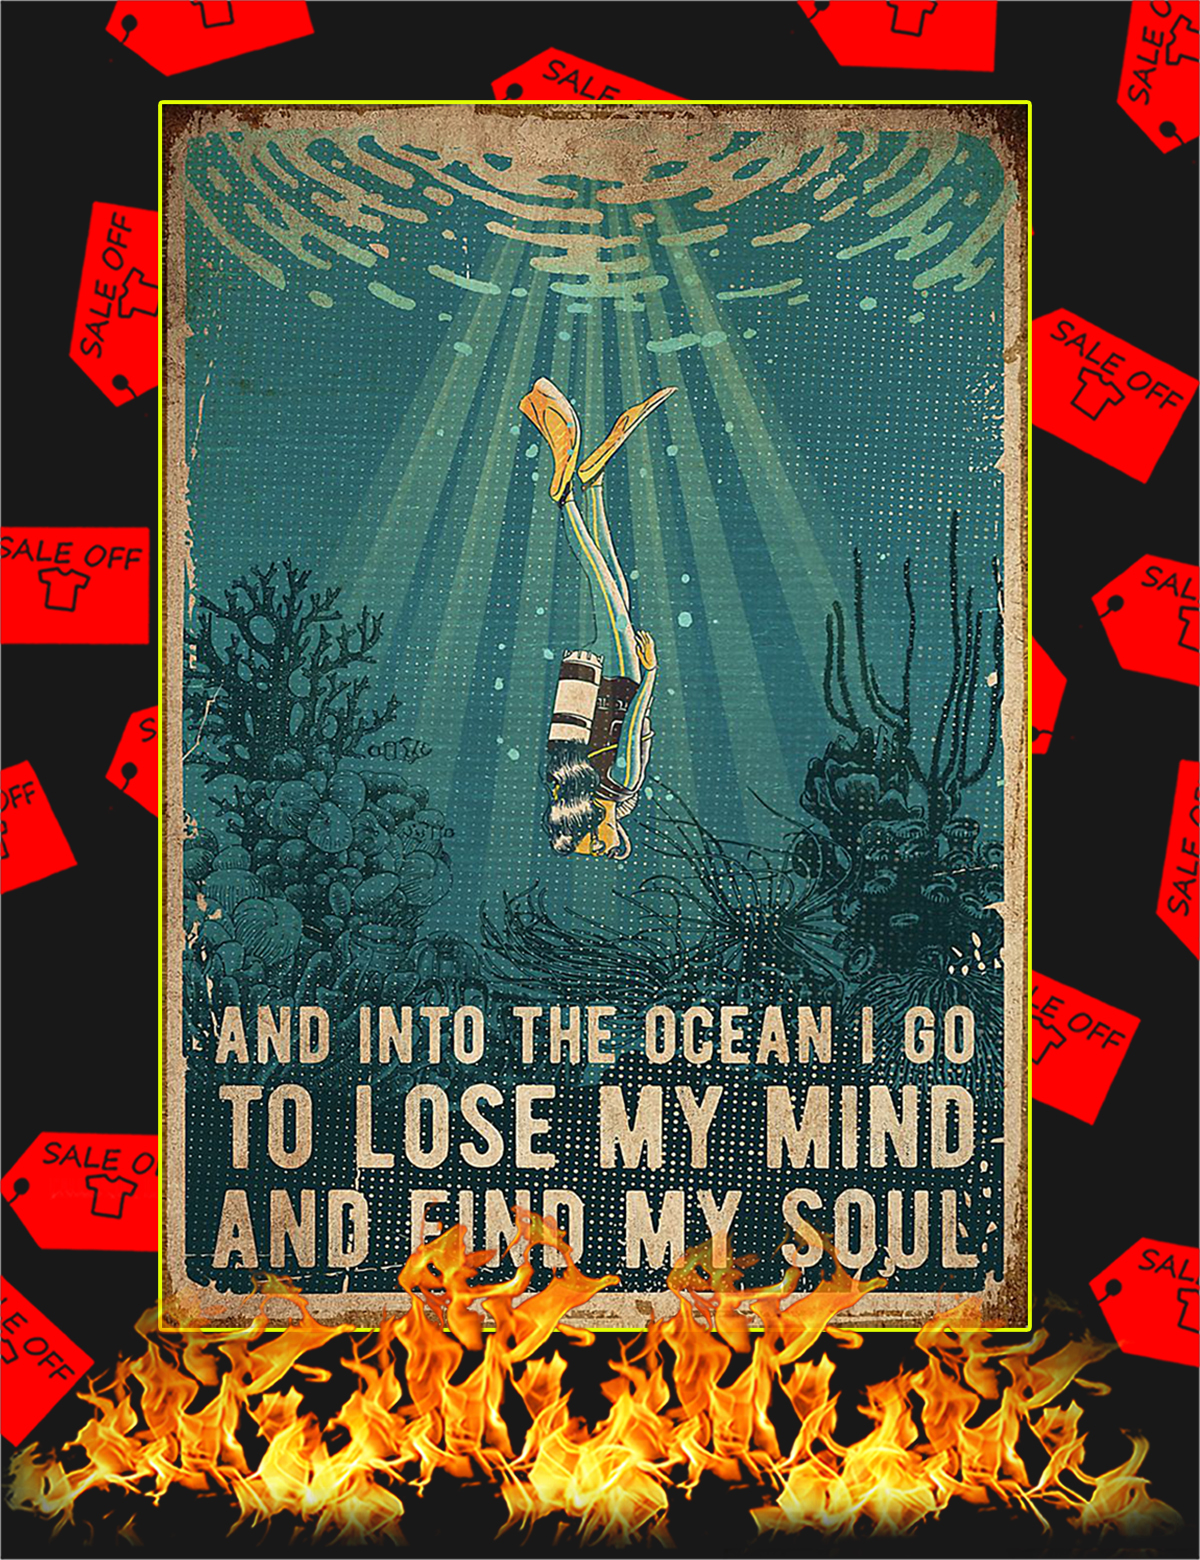 Scuba And into the ocean poster - A1